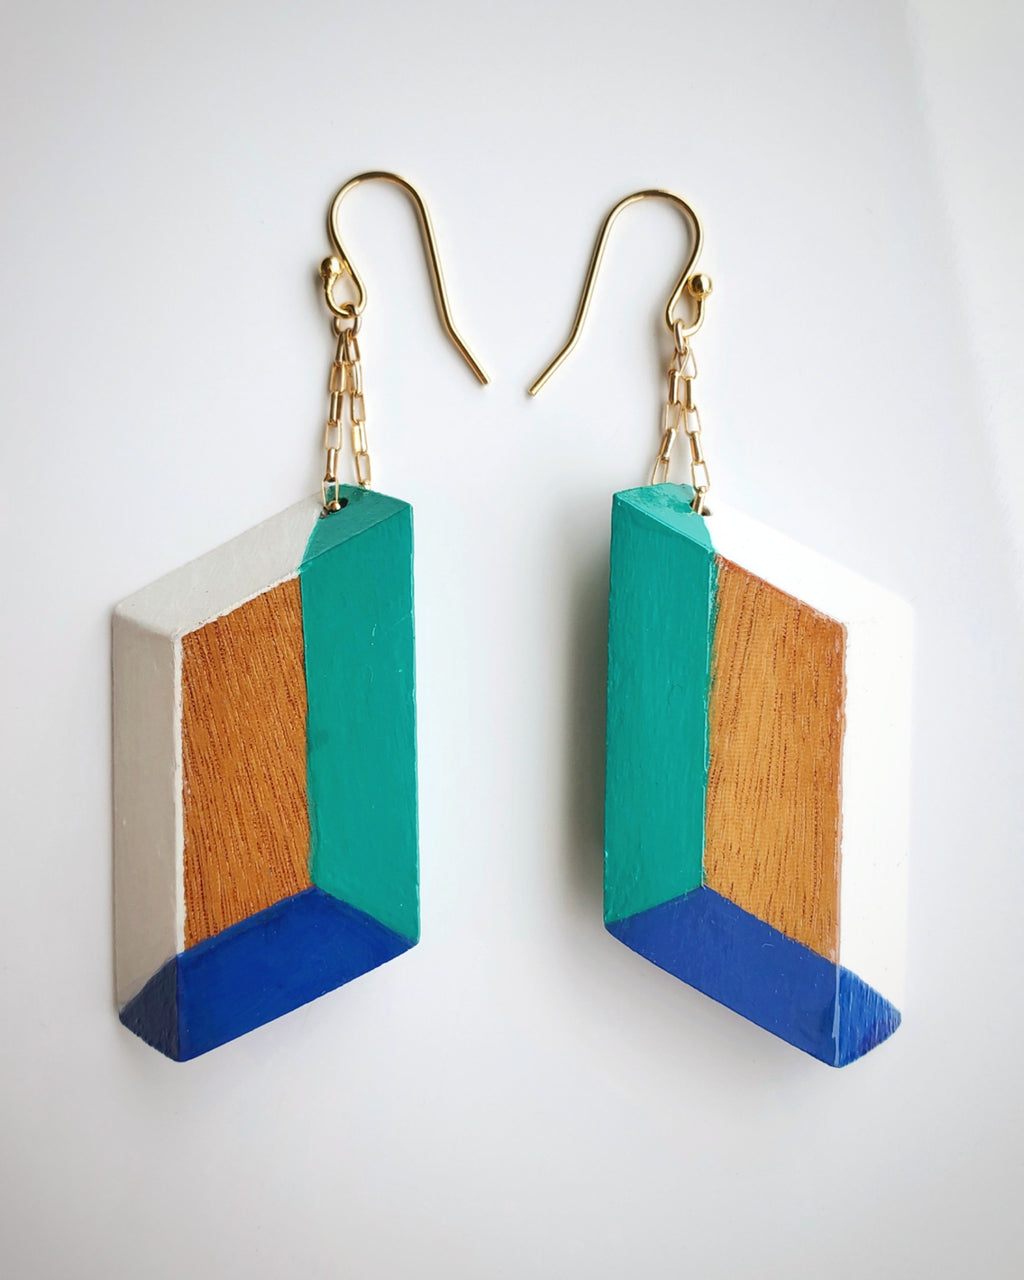 WBG Earrings by Ma Nong